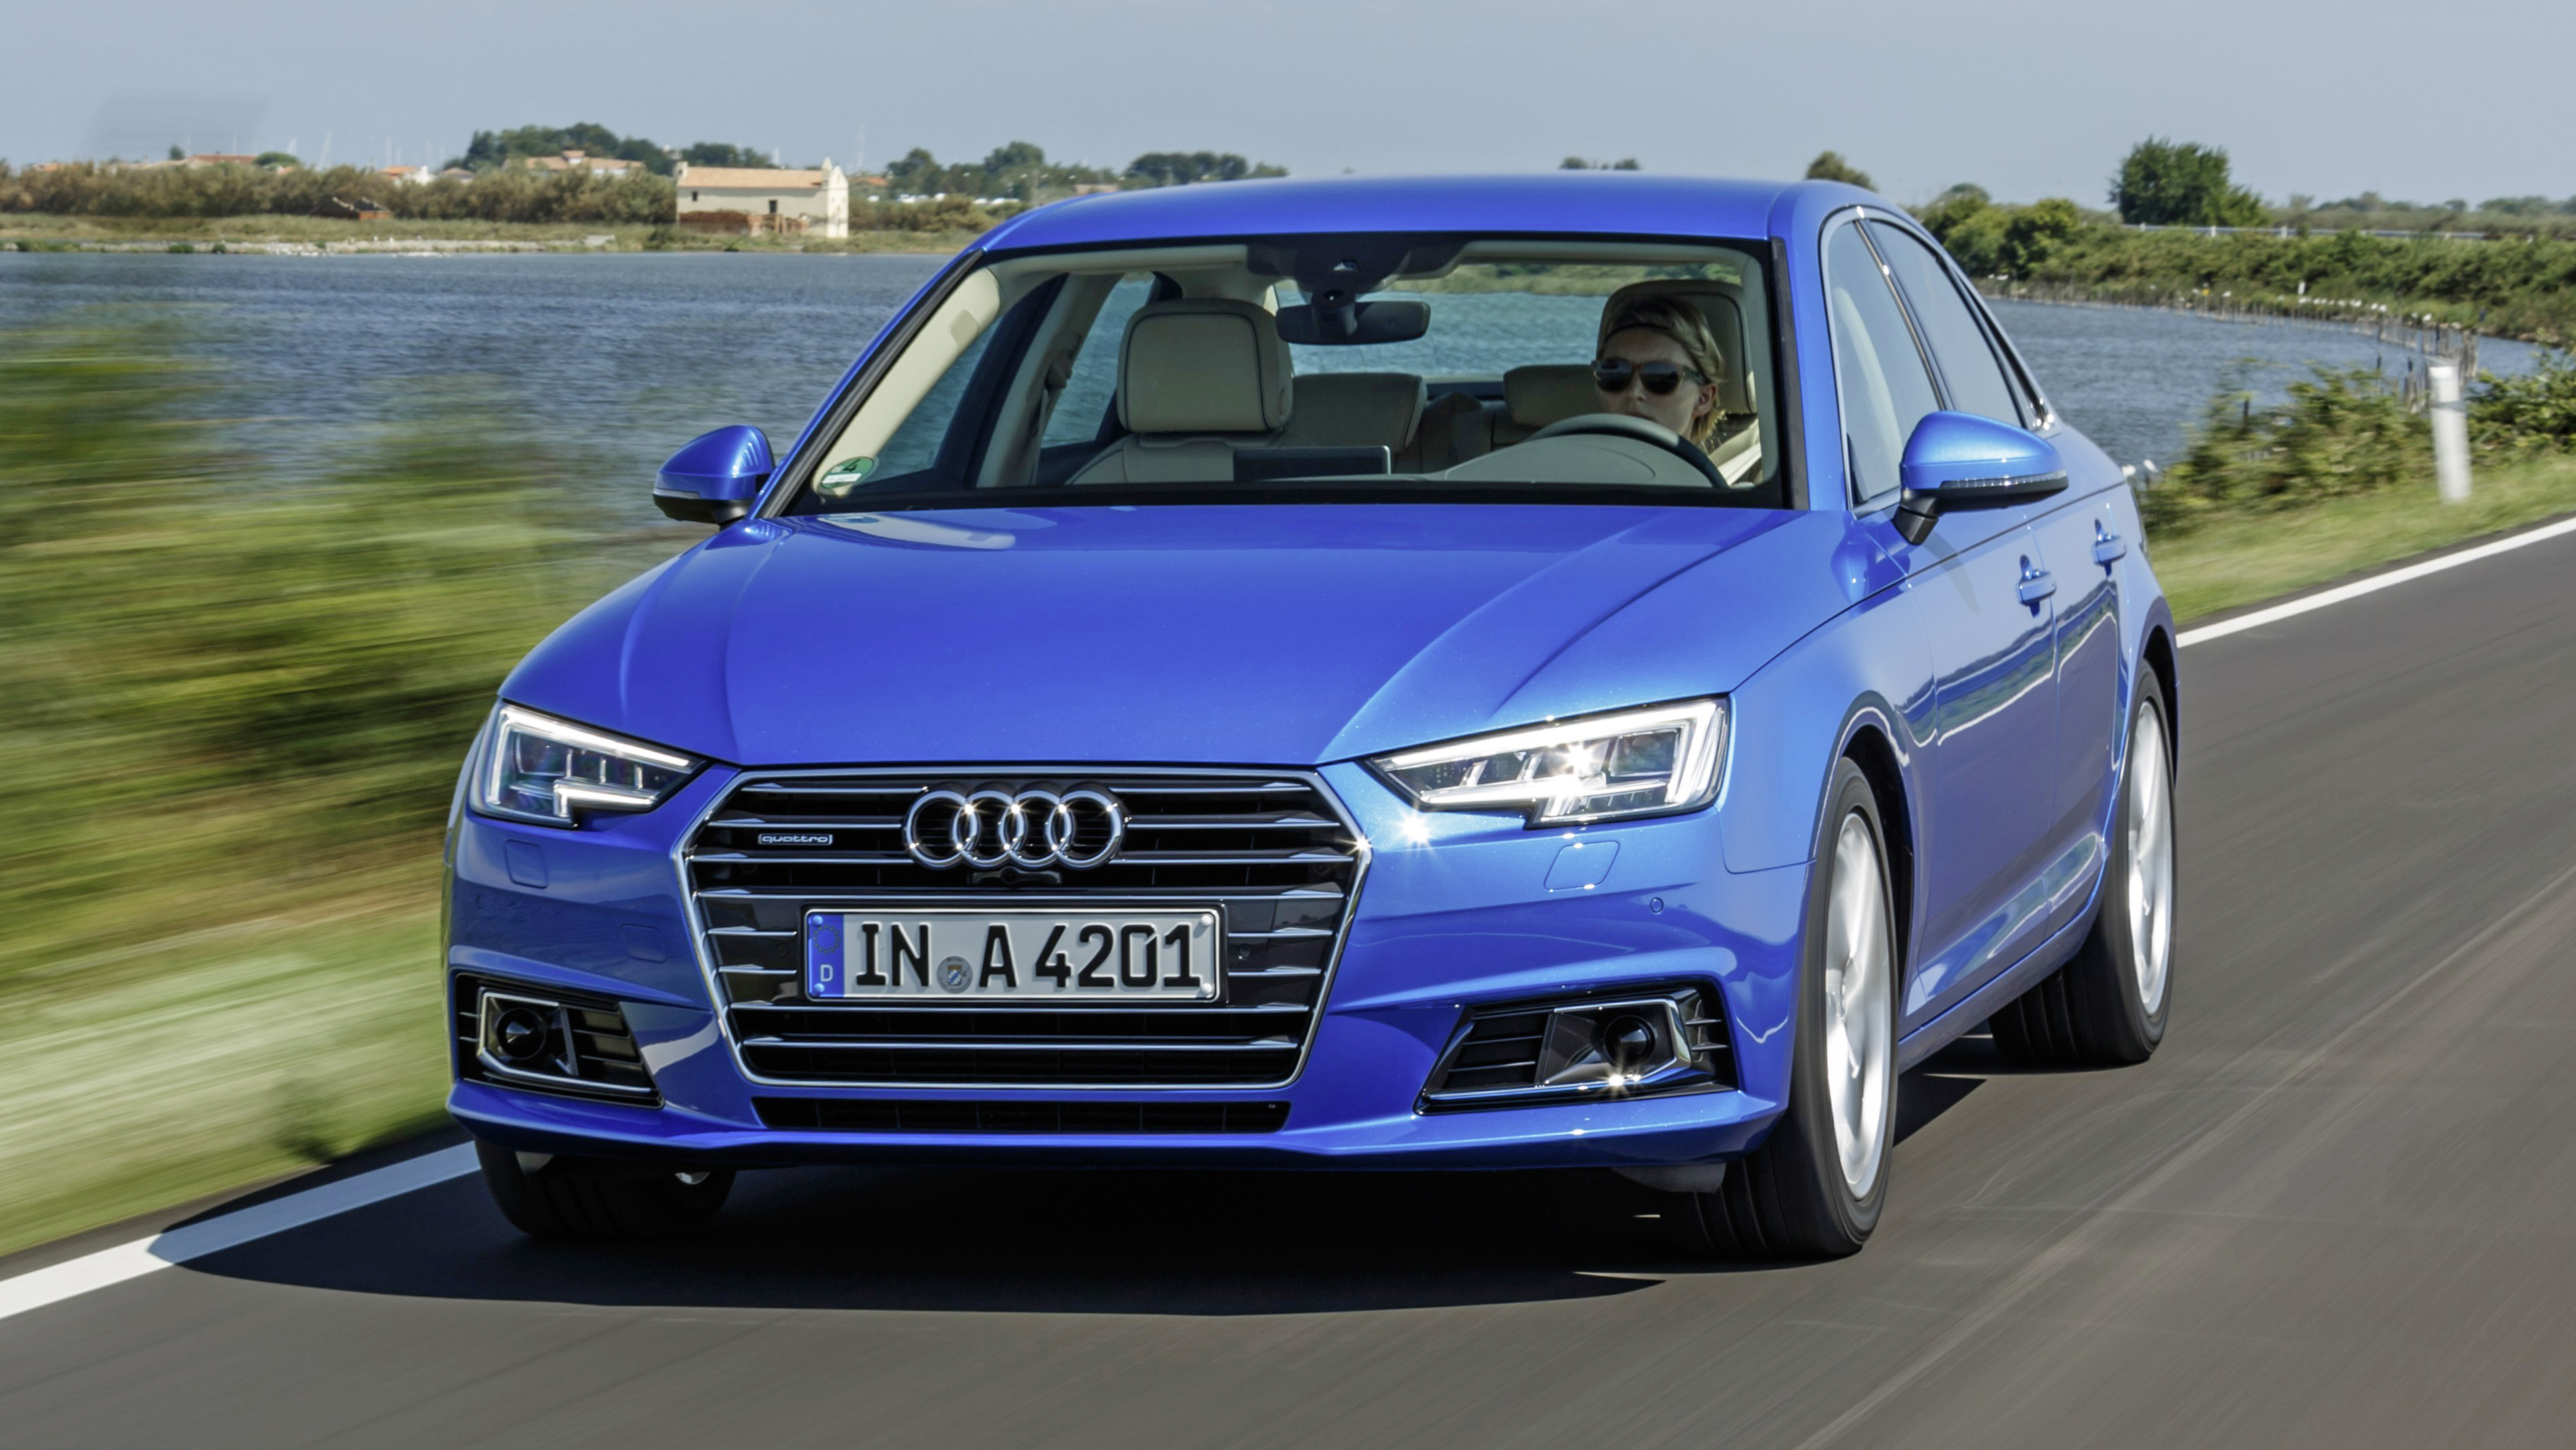 A4 Top Gear Hyundai 2 7l Engine Design First Drive The All New Audi